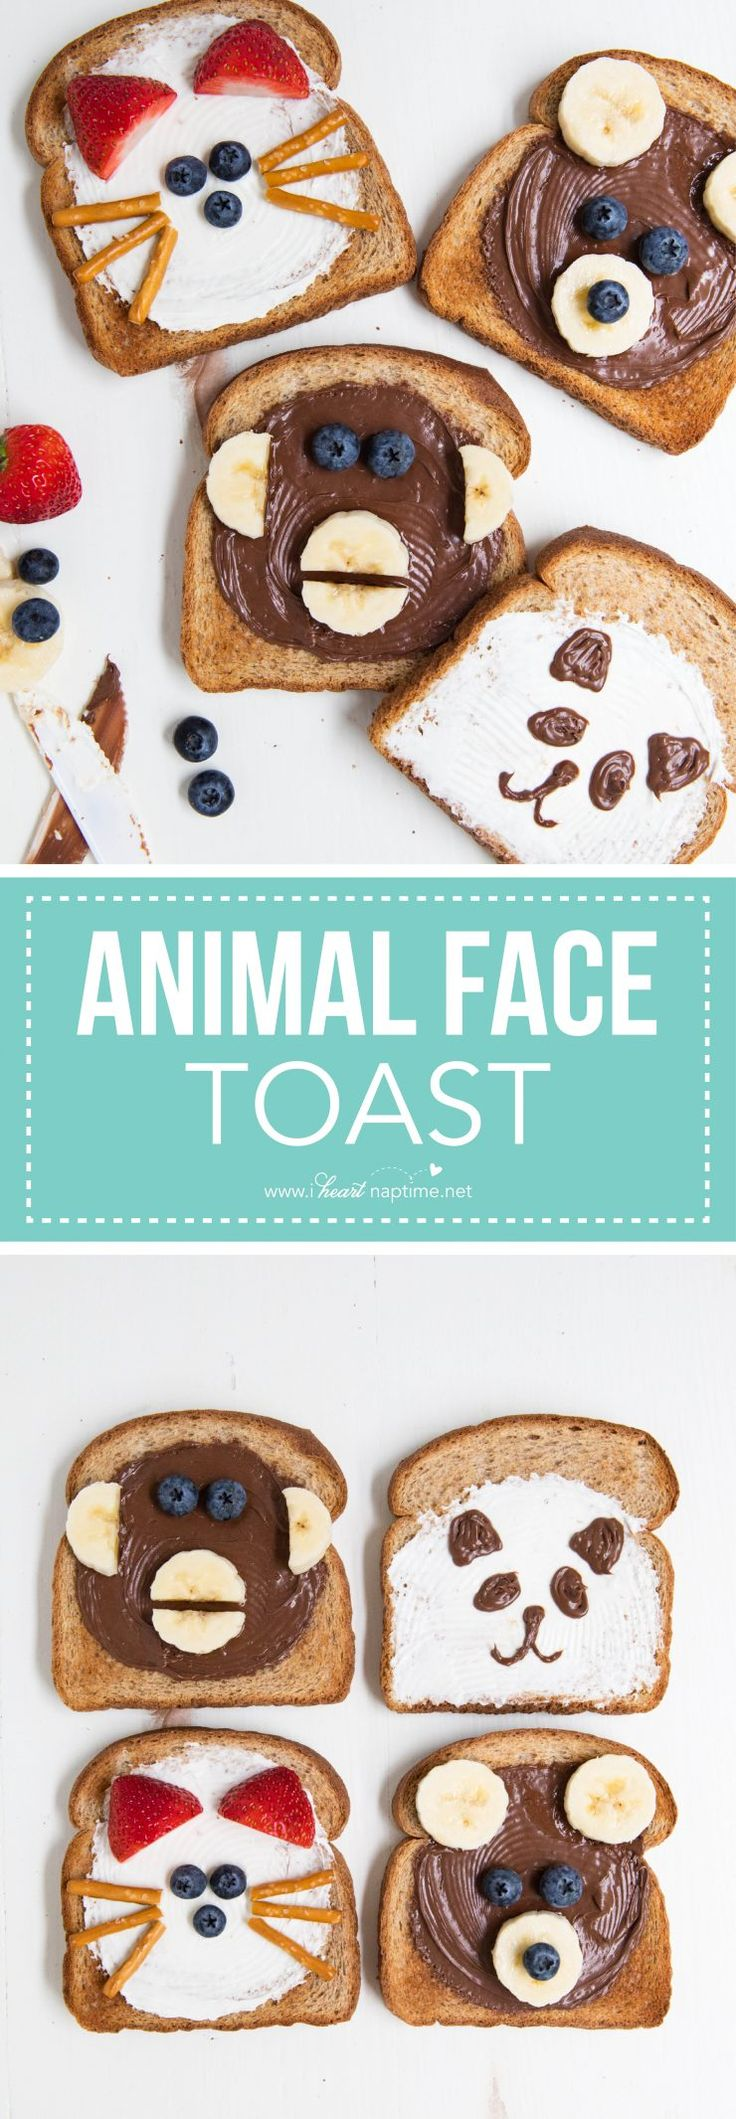 Kick off your kiddo's day with this fun animal face toast recipe!